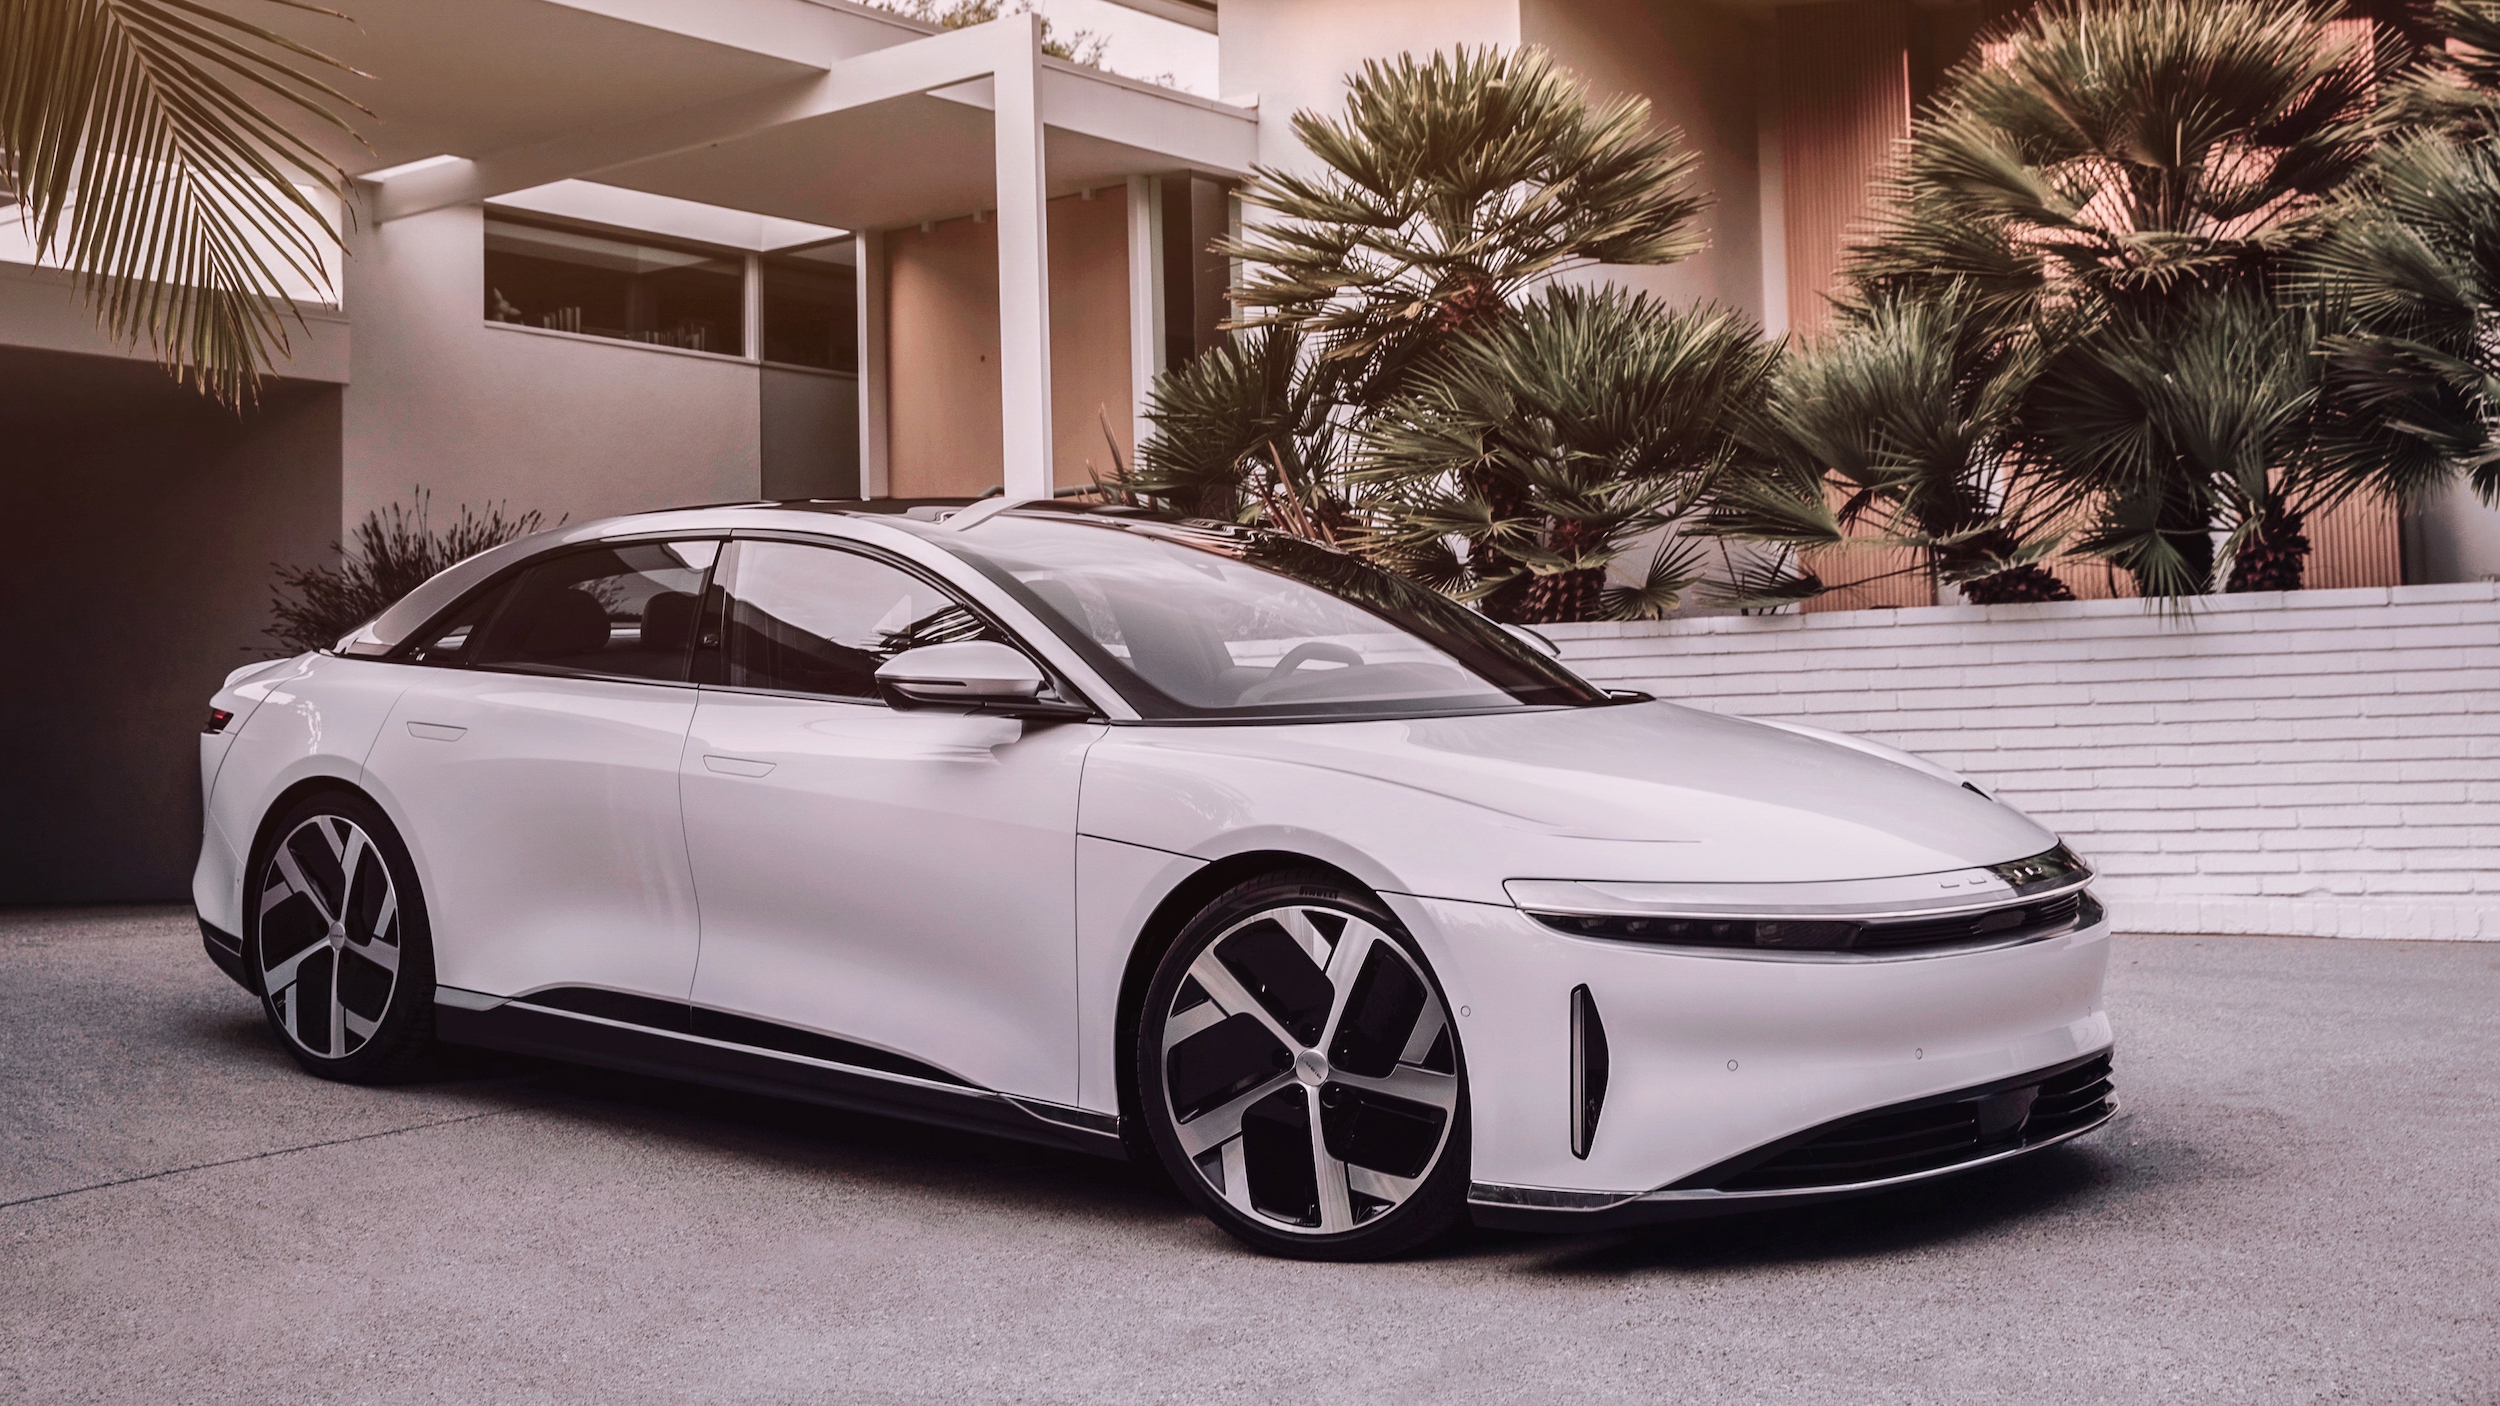 The Lucid Air parked outside a modern house